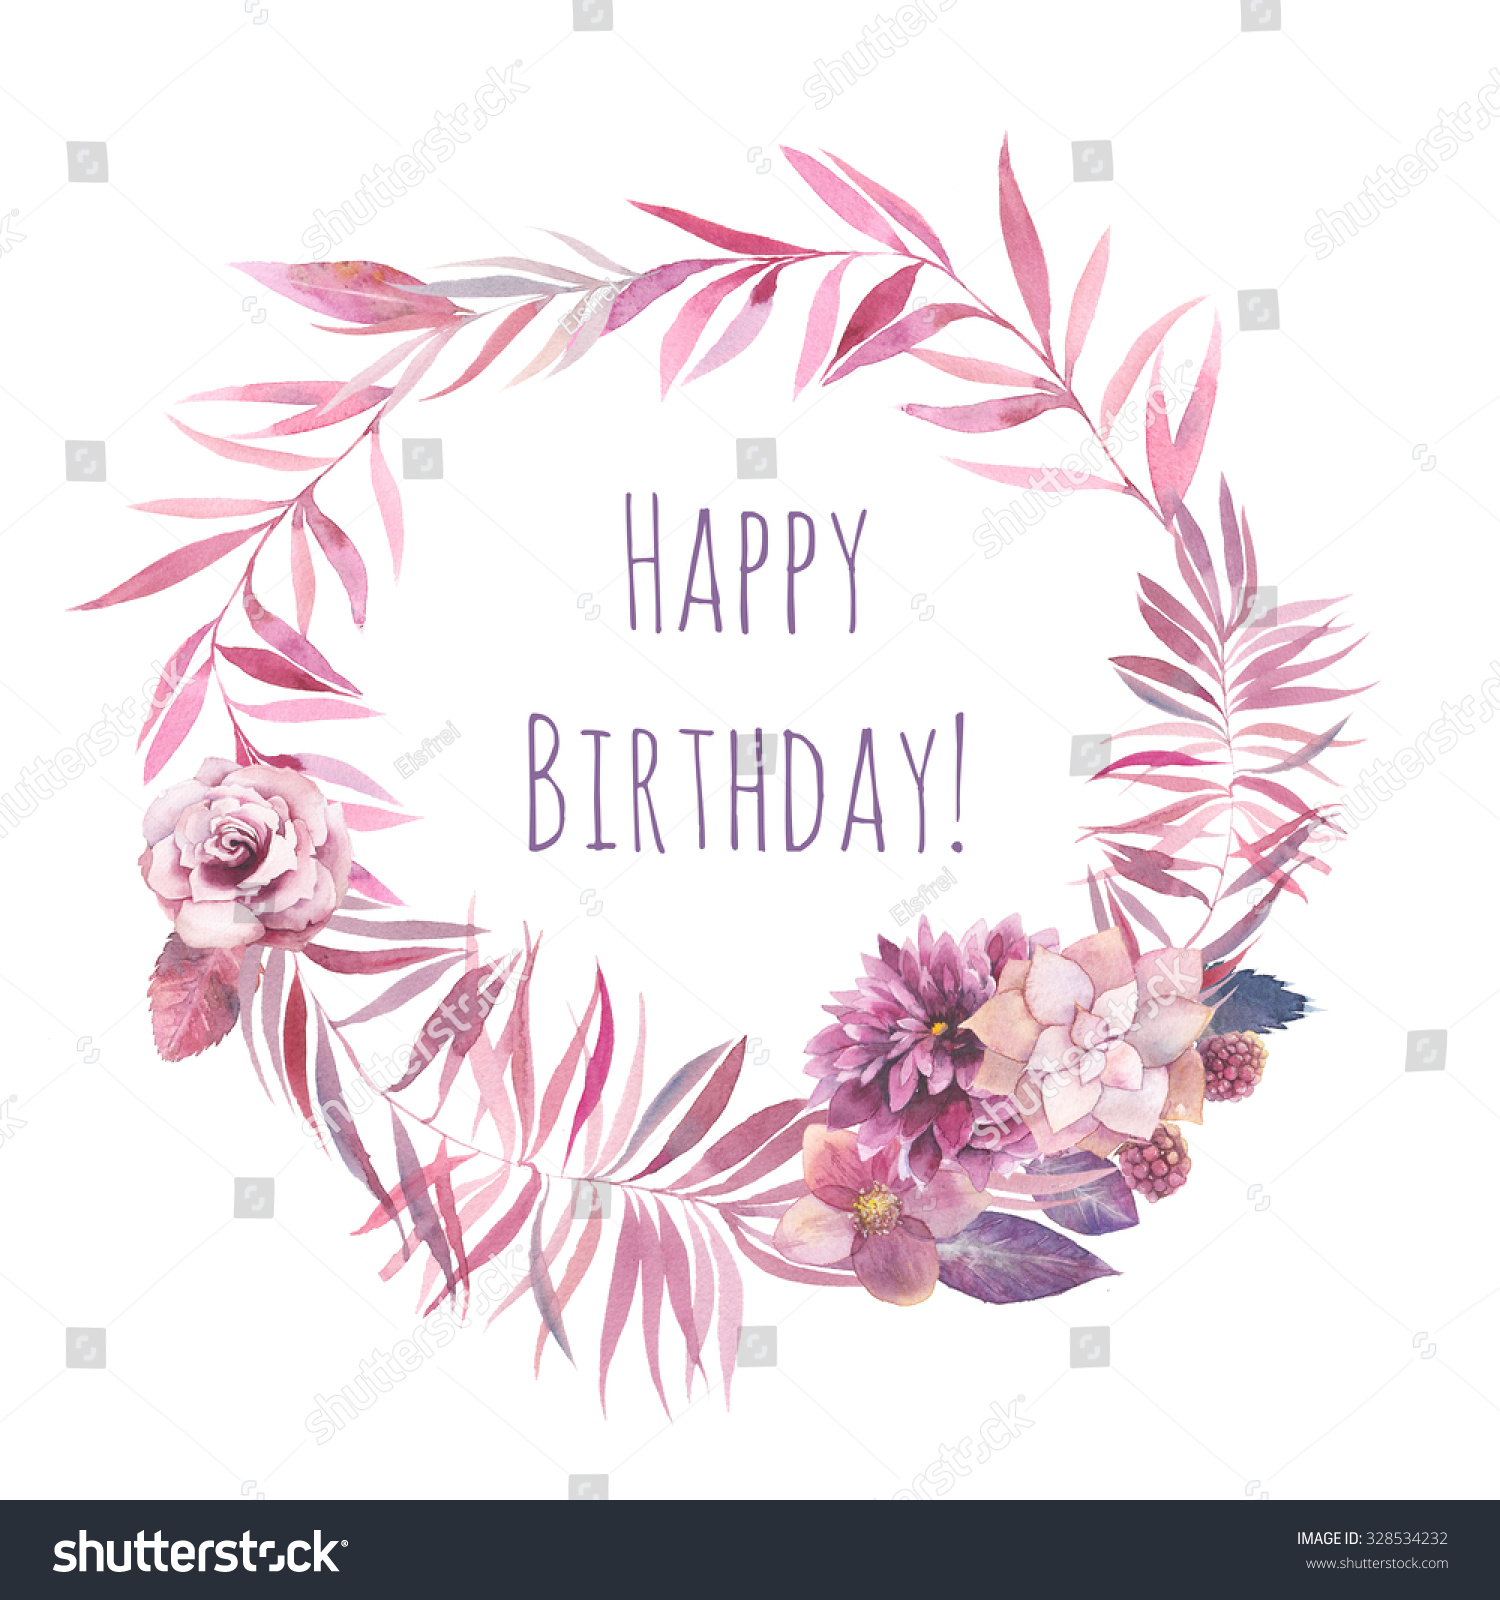 Watercolor happy birthday card floral wreath stock illustration watercolor happy birthday card floral wreath isolated on white background pink palm tree leaves izmirmasajfo